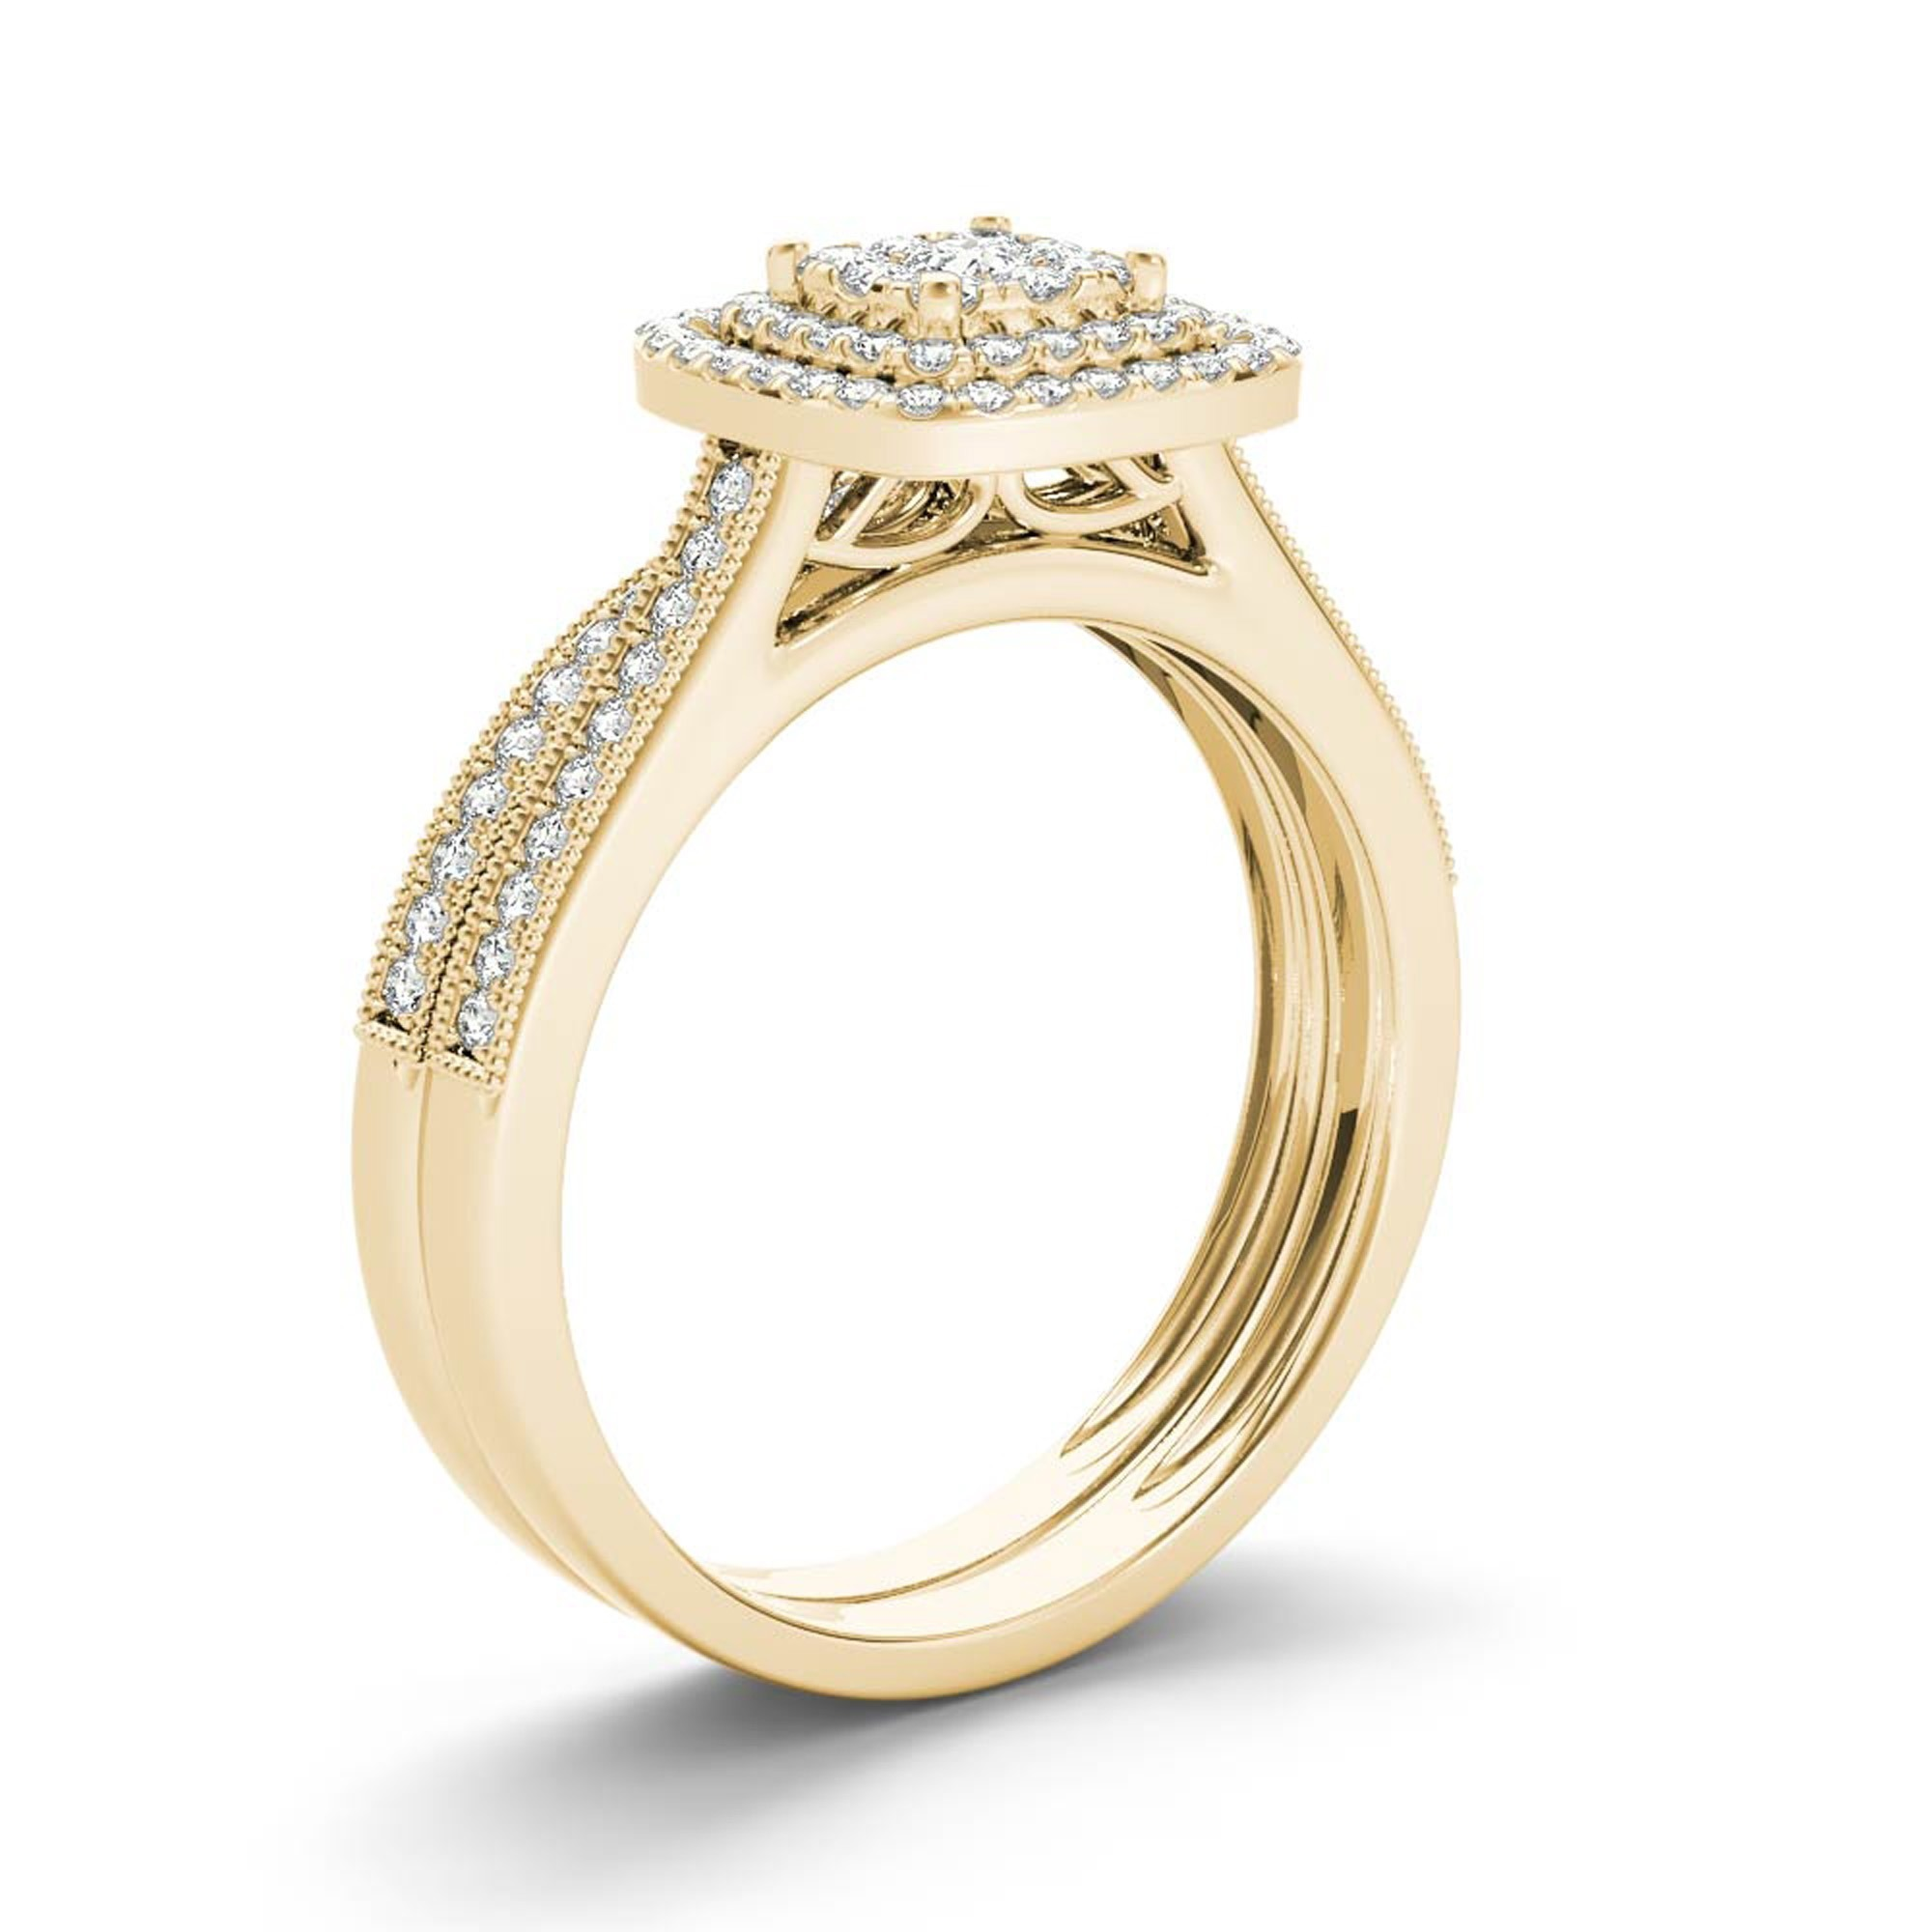 diamond rings wedding stone jewelry stl color models model printable and ring print cgtrader